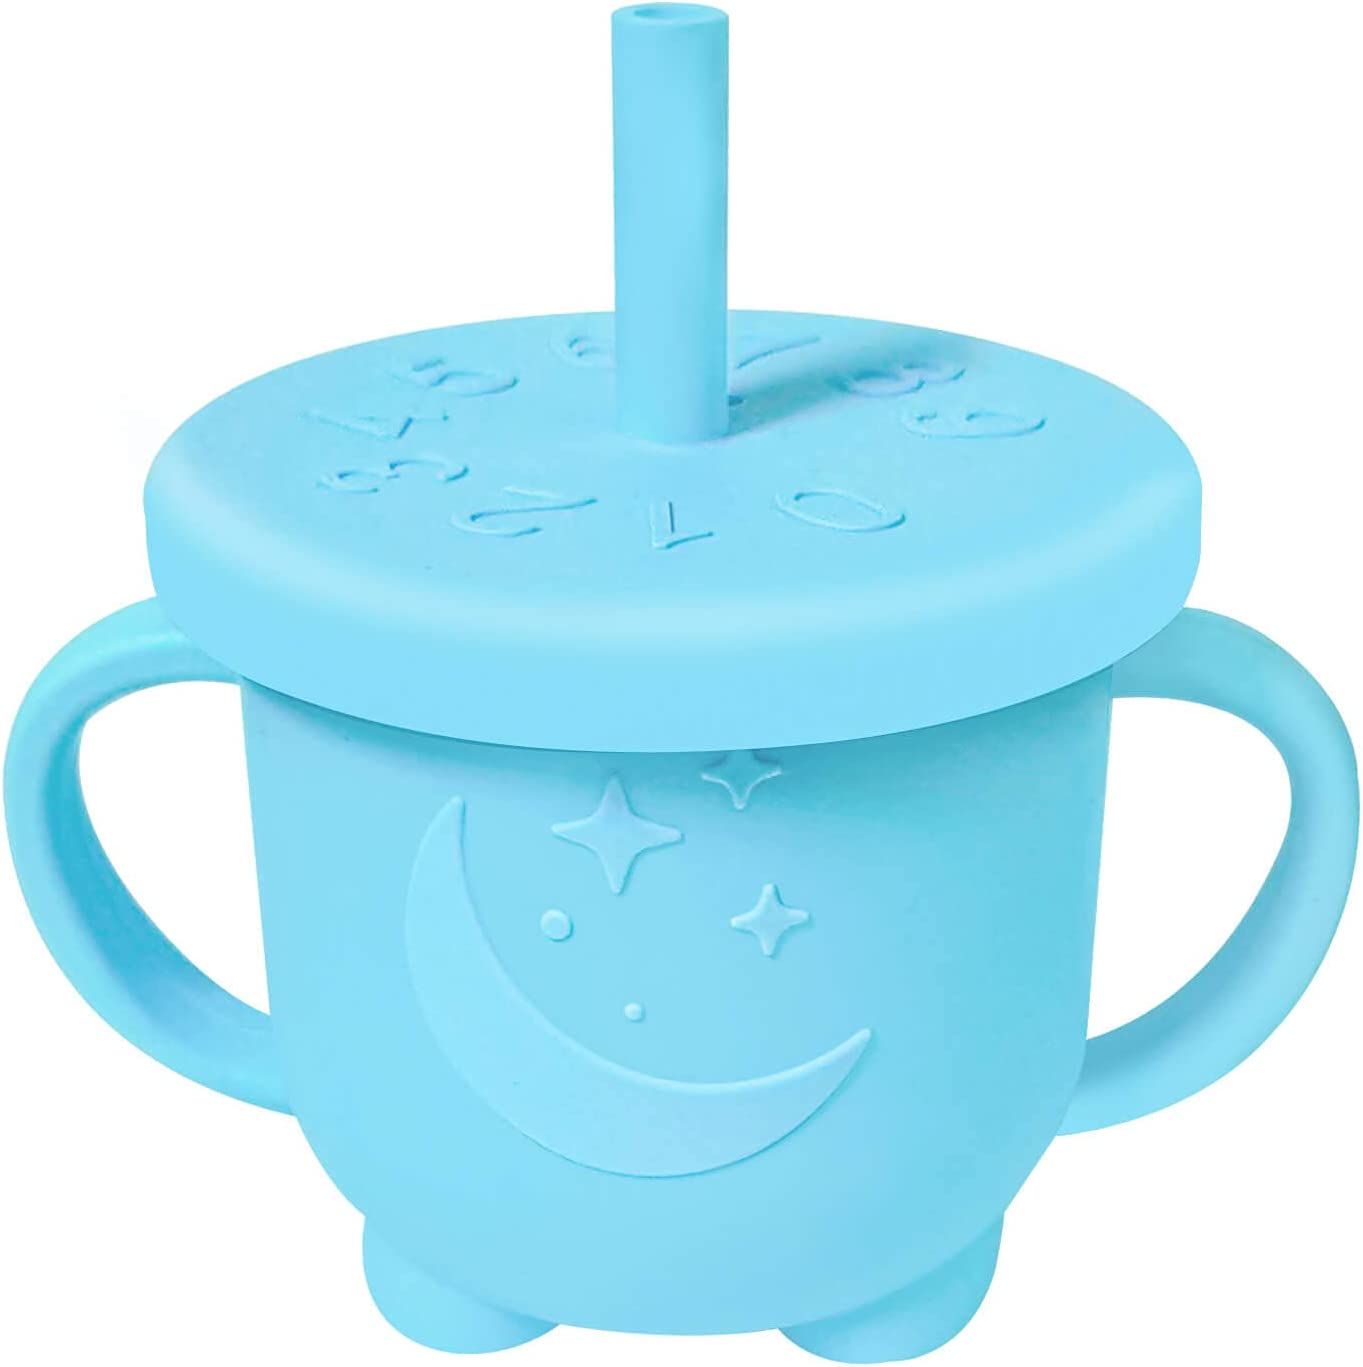 Toddler Cups, Food Grade Silicone Sippy Cups, Innovative Spill-proof, Leak-proof and Drop-proof Baby Training Cup with Air Vent, Unbreakable, Easy to Drink,7oz, 6+ Months (Blue)